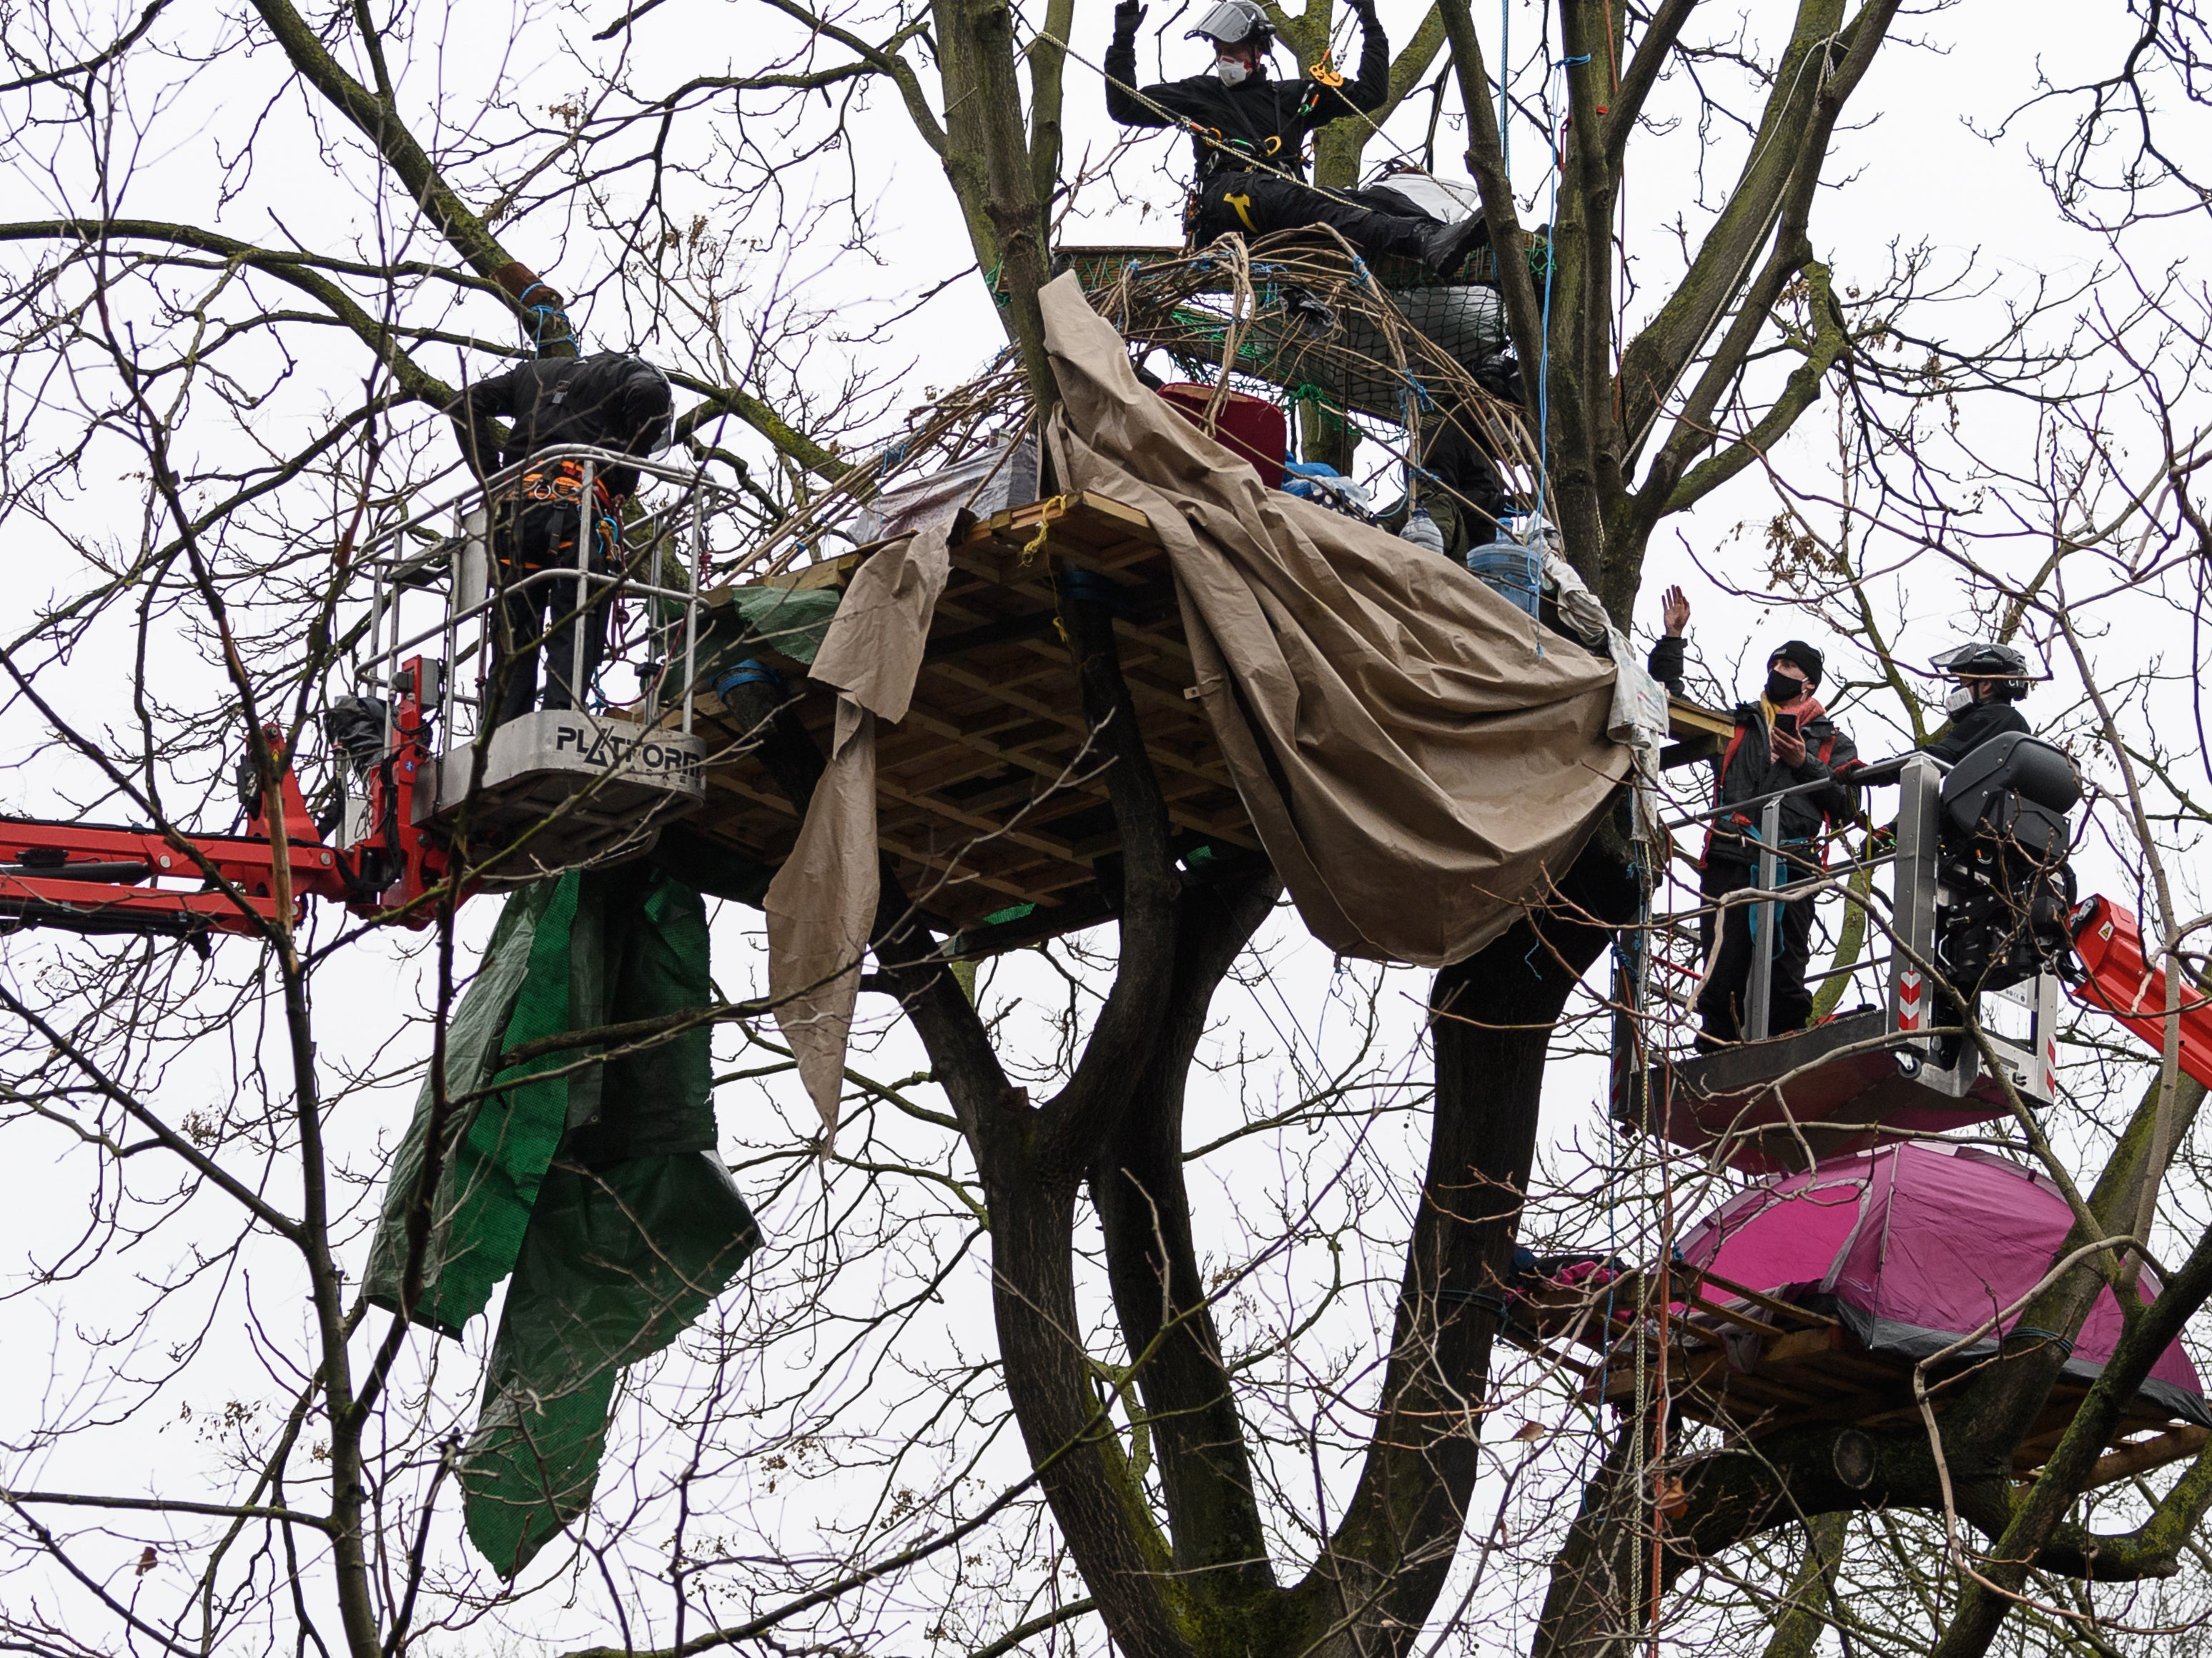 HS2 protests: Bailiffs remove activists from central London trees and hand them over to police